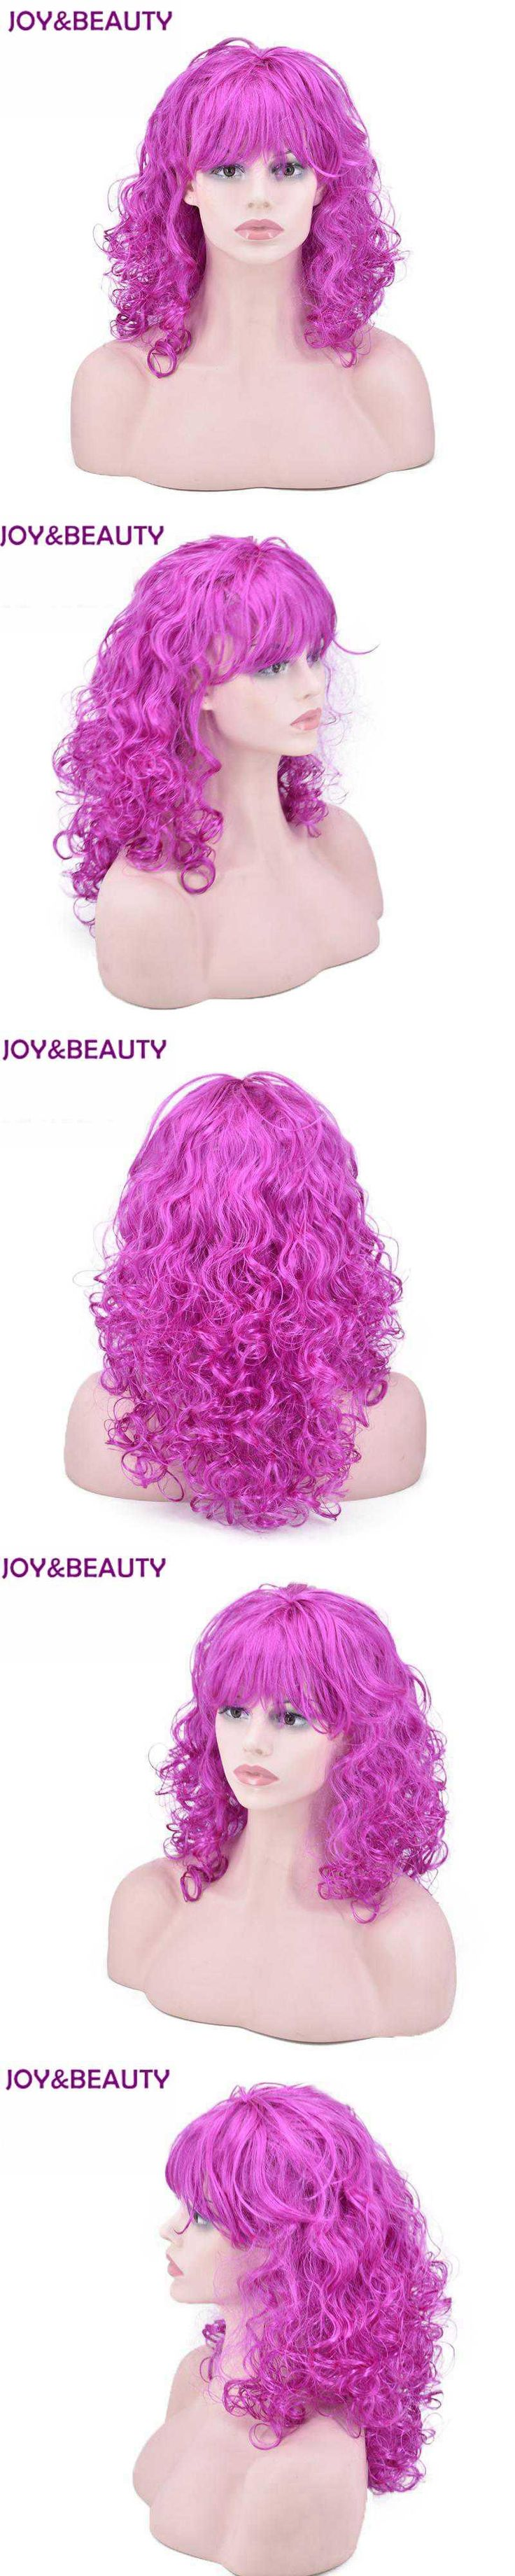 JOY&BEAUTY Synthetic Hair Body Wave Women Wig Halloween Masquerade Cosplay Stage Show Costume Party Wig